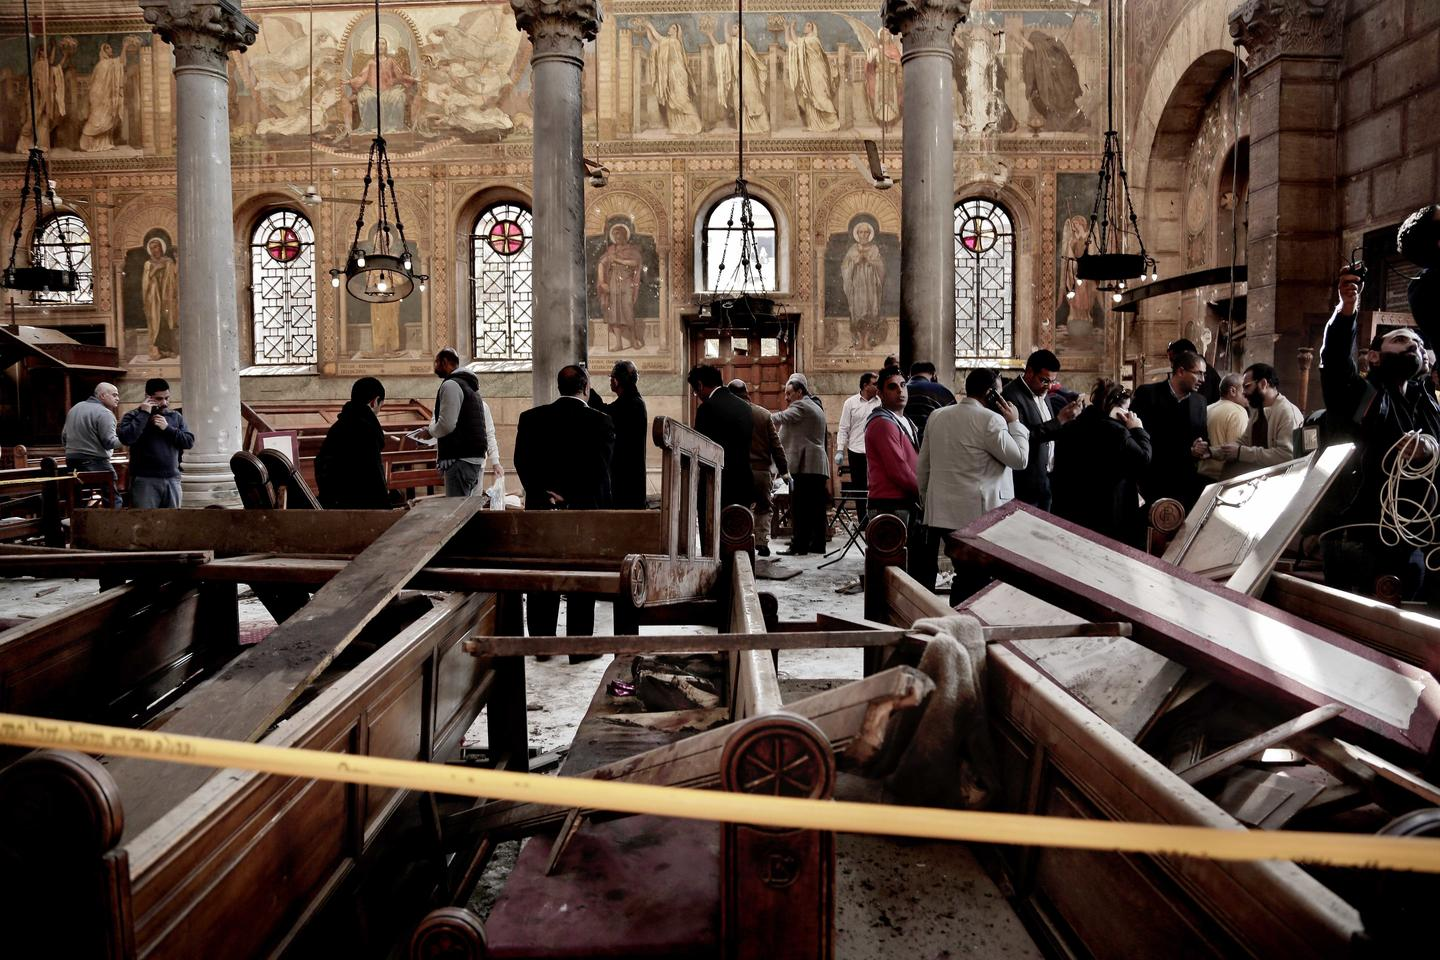 ISIS Wins When Christians Leave the Middle East